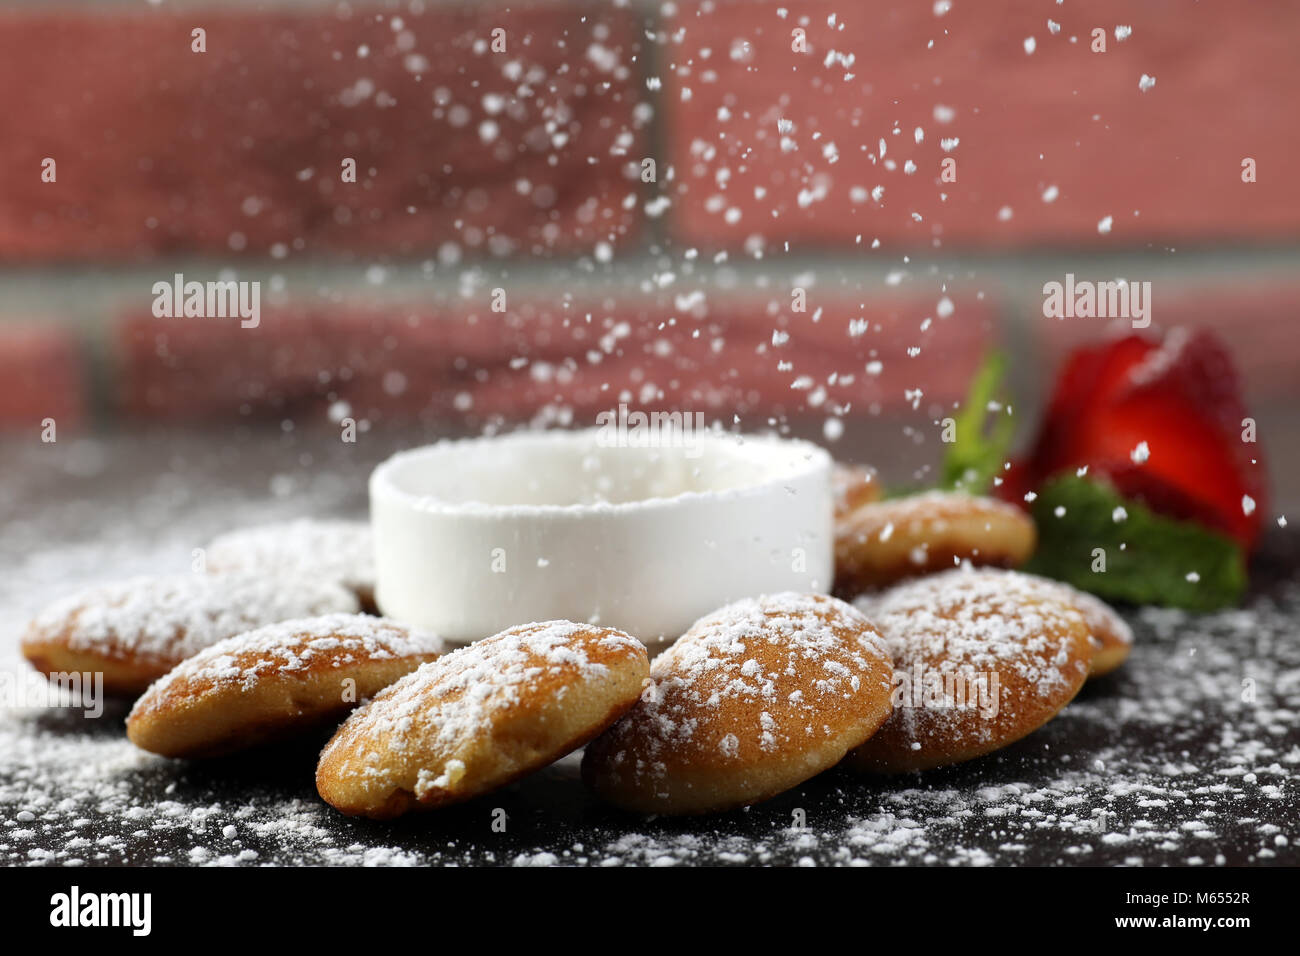 Mini pancakes with strawberry & syrup - Stock Image